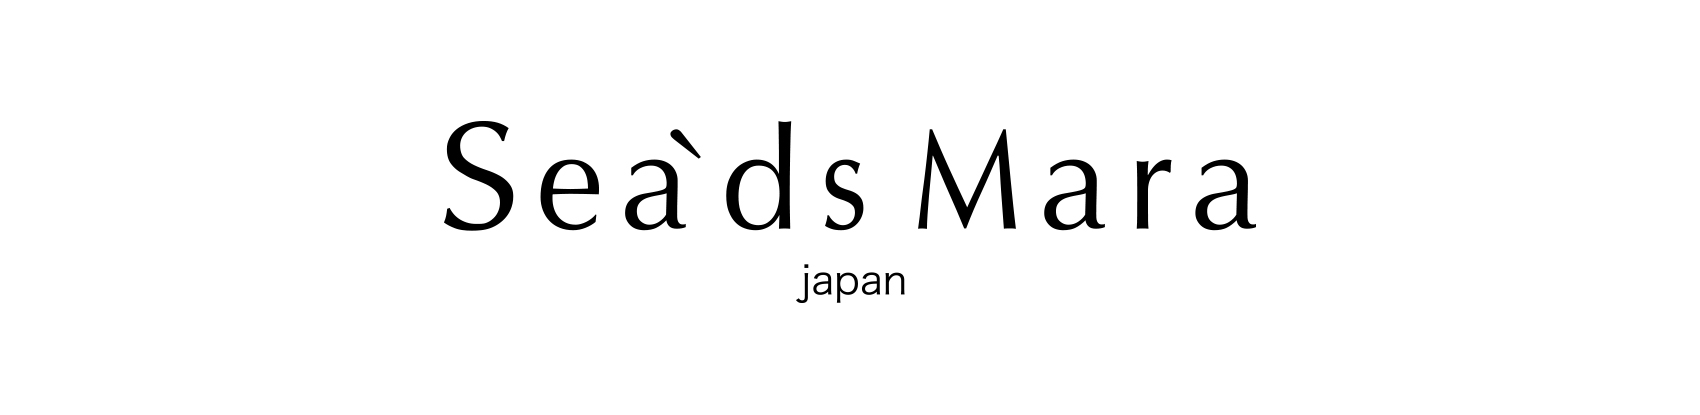 ■Sea'ds Mara